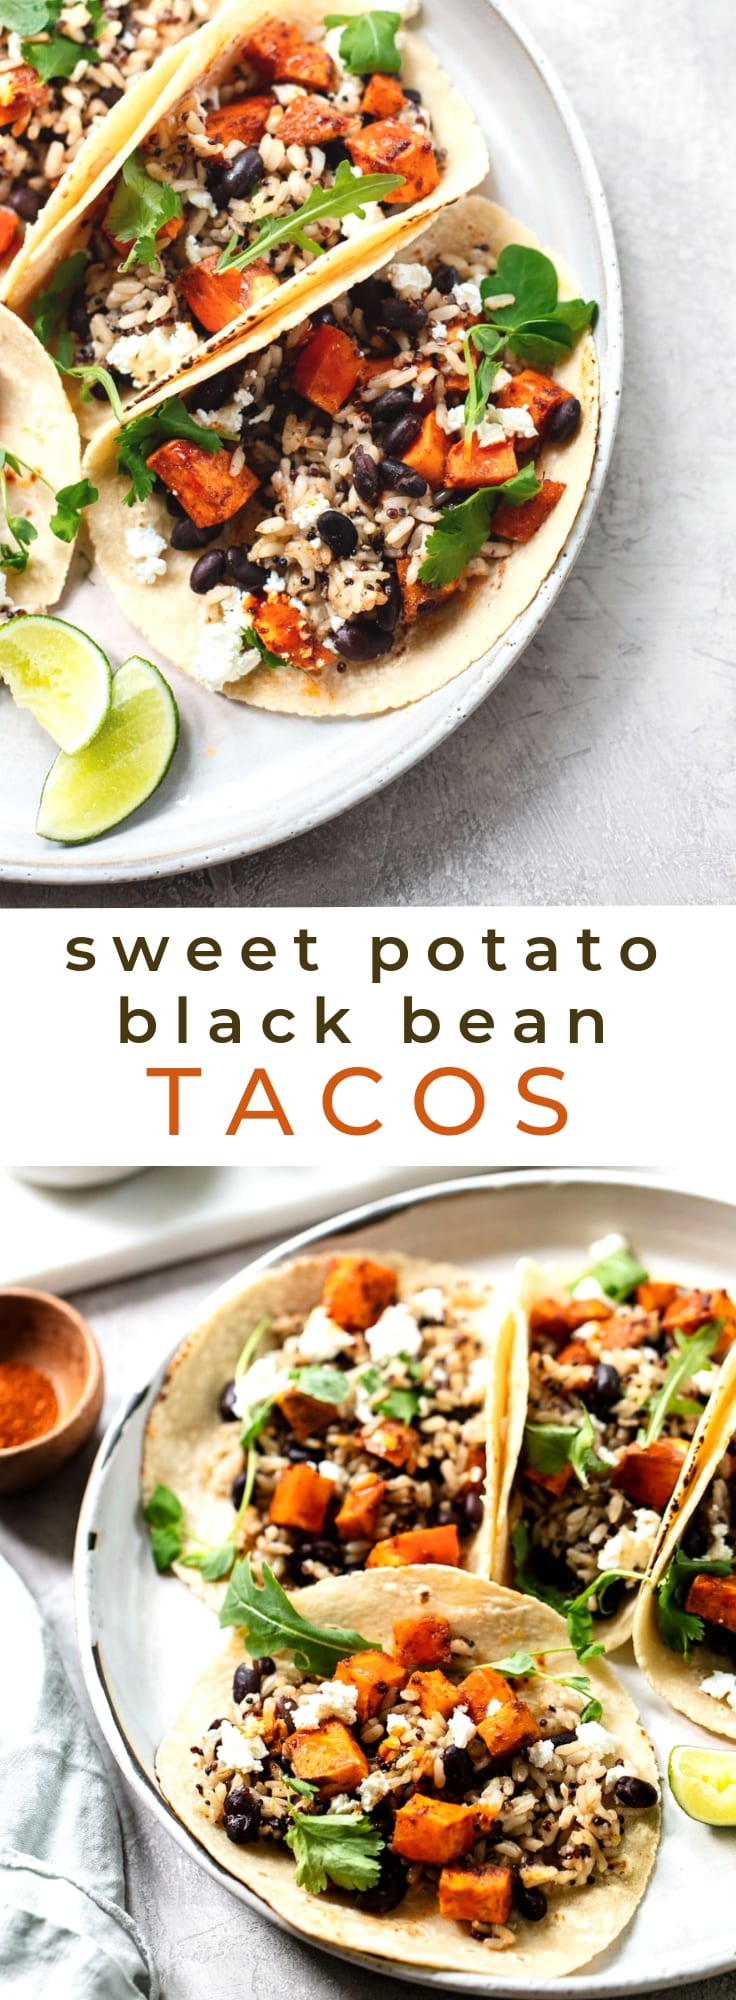 Chipotle Sweet Potato and Black Bean Tacos (Gluten-Free Vegetarian)